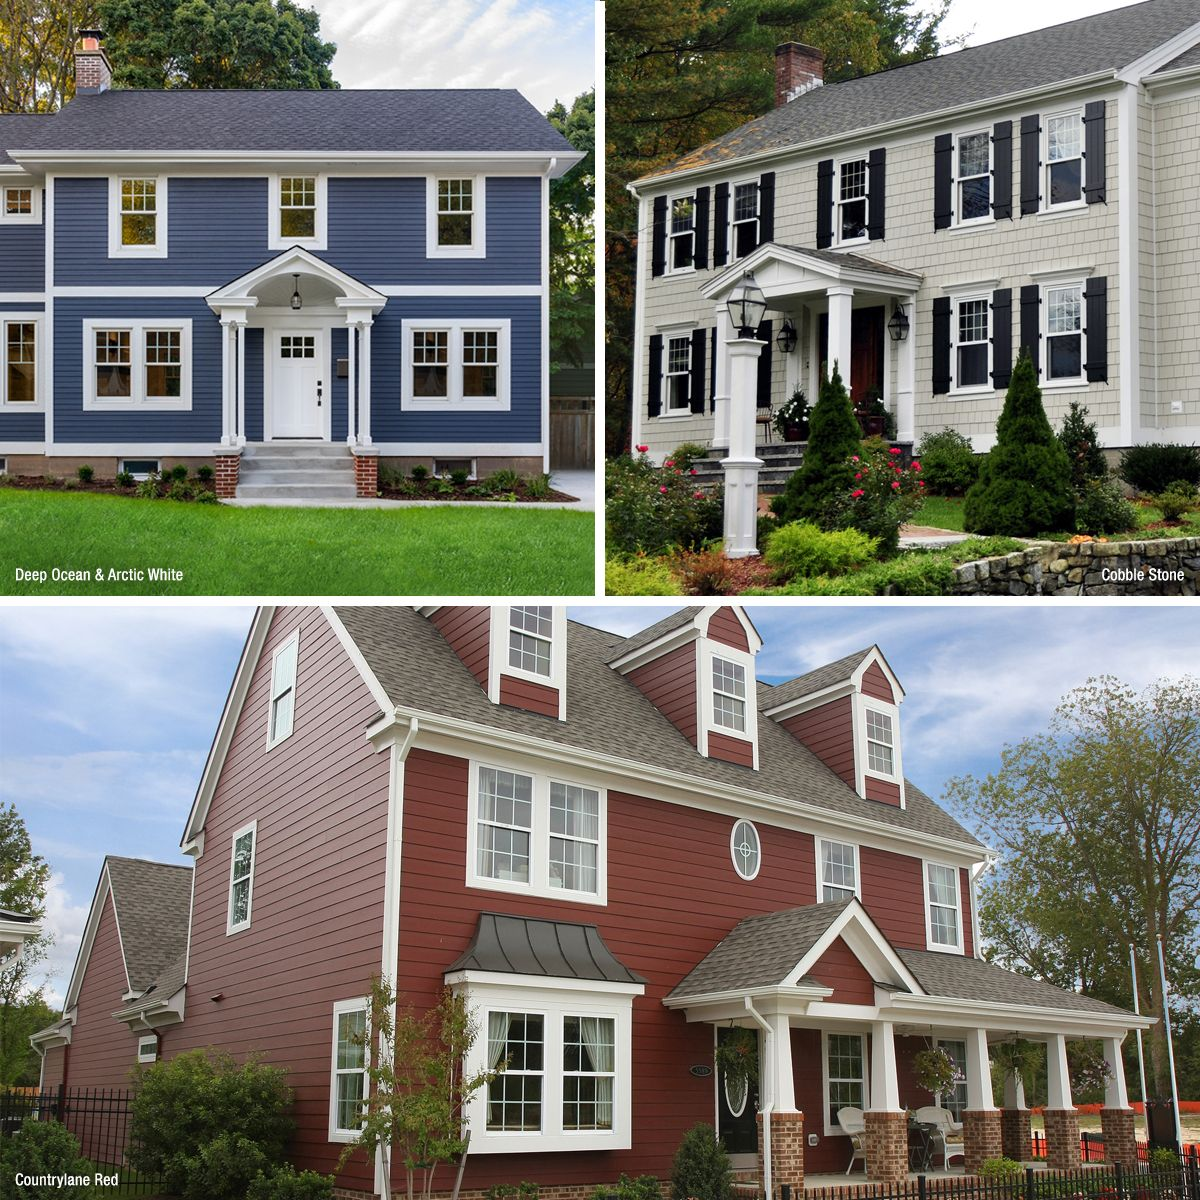 Colonial House Color Ideas Get Inspired With Siding Options For Your New Home Or Re Side Project Exterior House Siding Colonial House Exteriors Colonial House